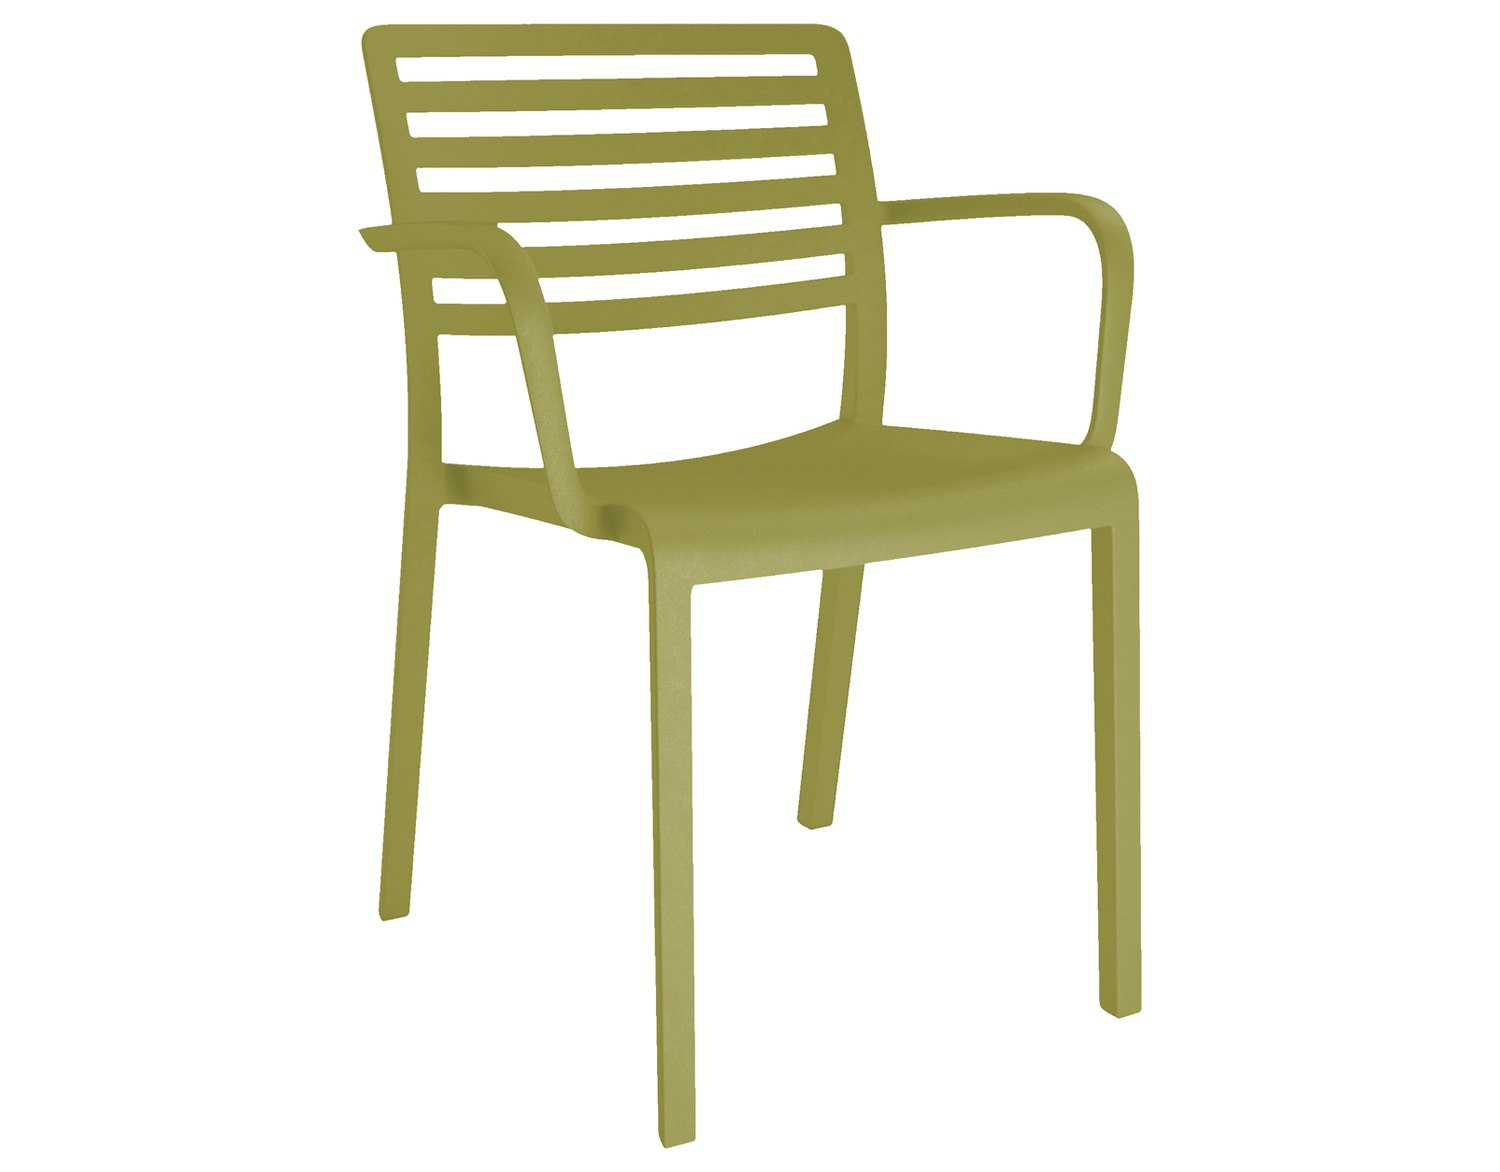 resols resol deltasol reg bx plus solar controller lisboa in the  resol lama recycled plastic green olive arm chair zoom